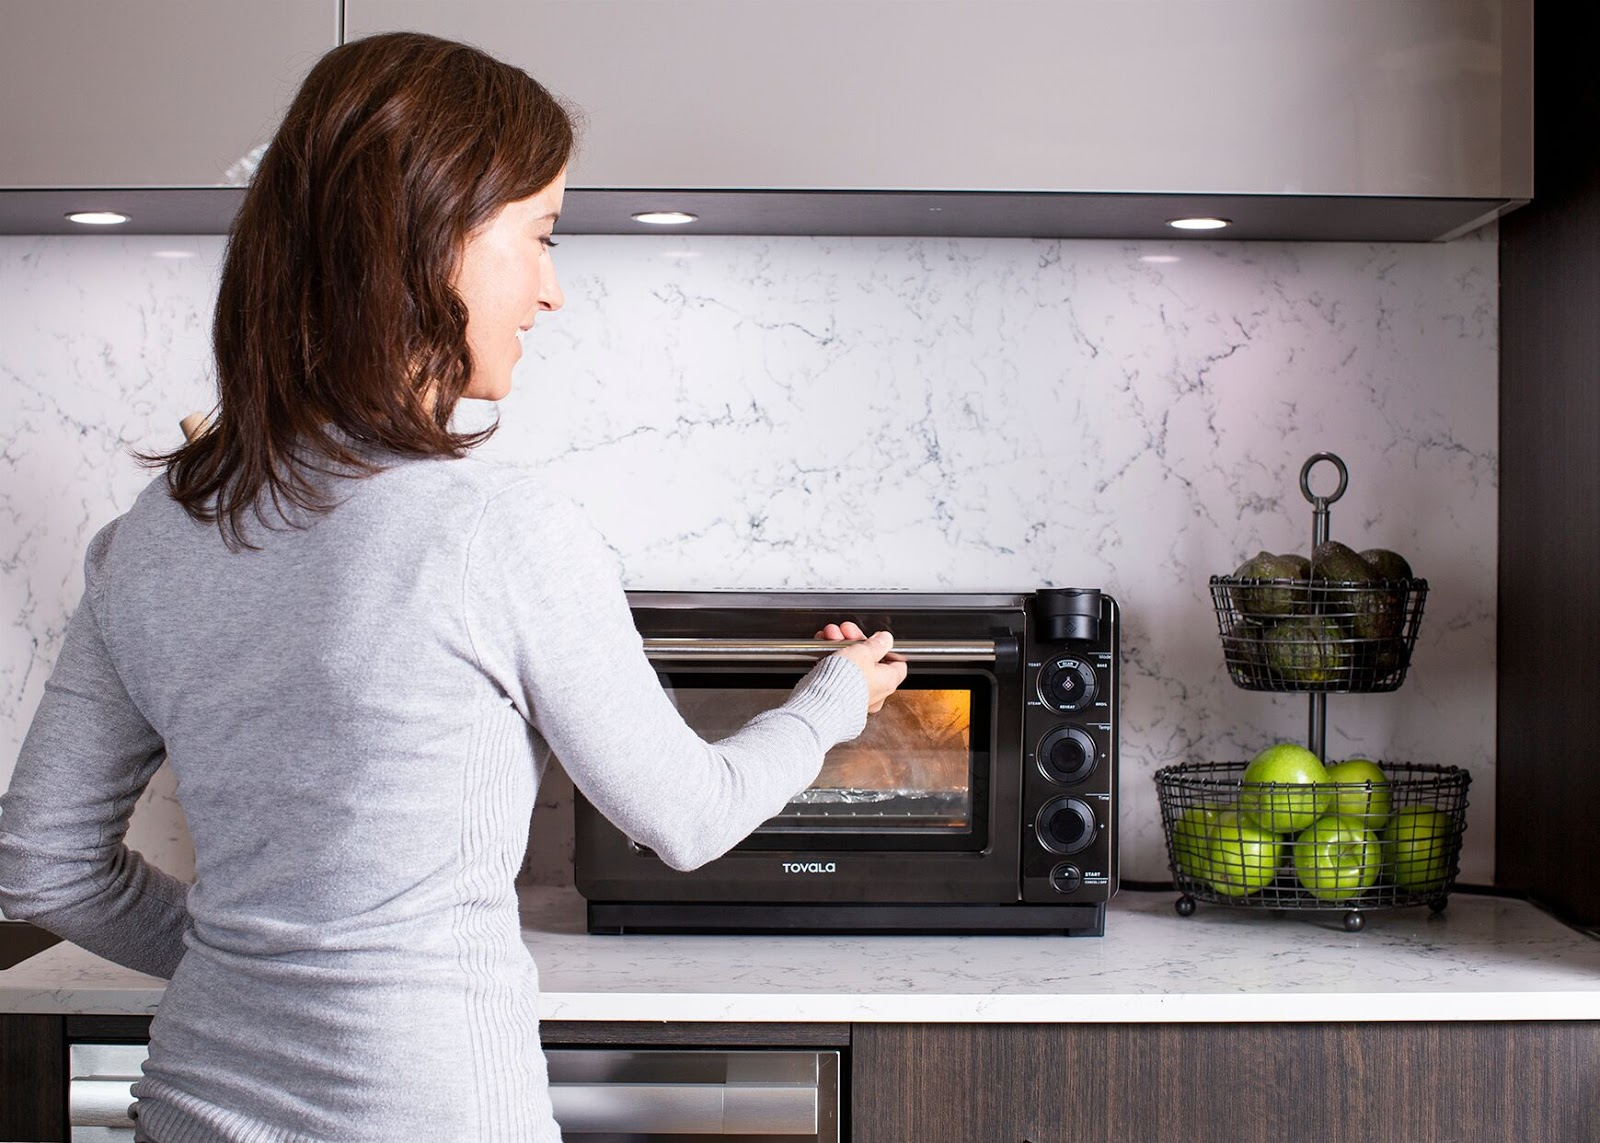 Countertop oven: A smiling woman opens a Tovala Oven